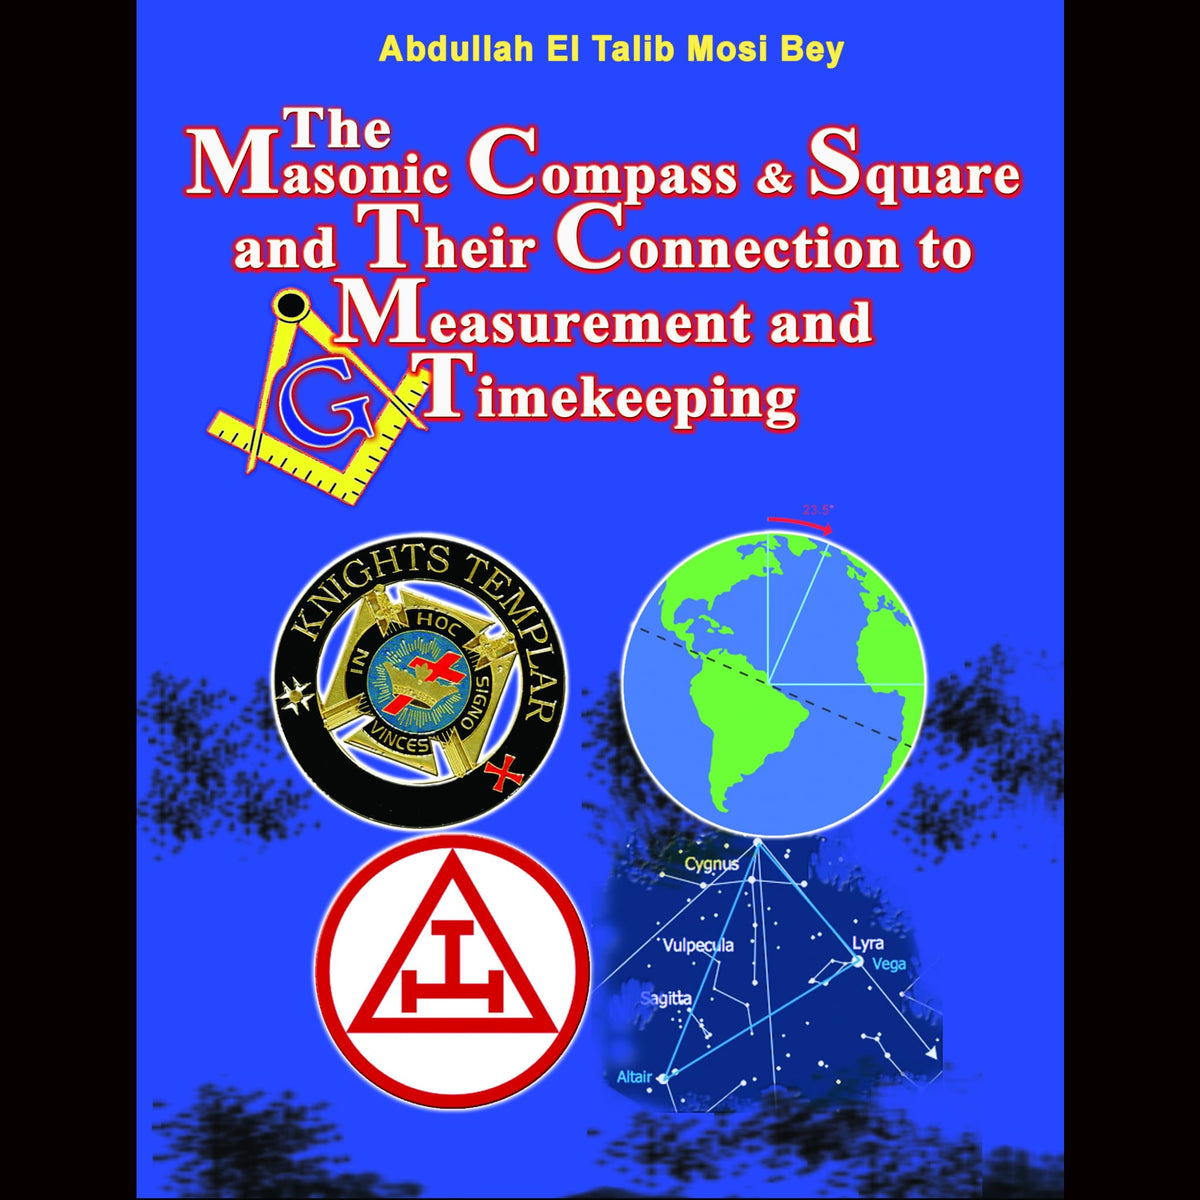 Masonic Compass and Square and Their Connection to Measurement and  Timekeeping by Abdullah El Talib Mosi Bey